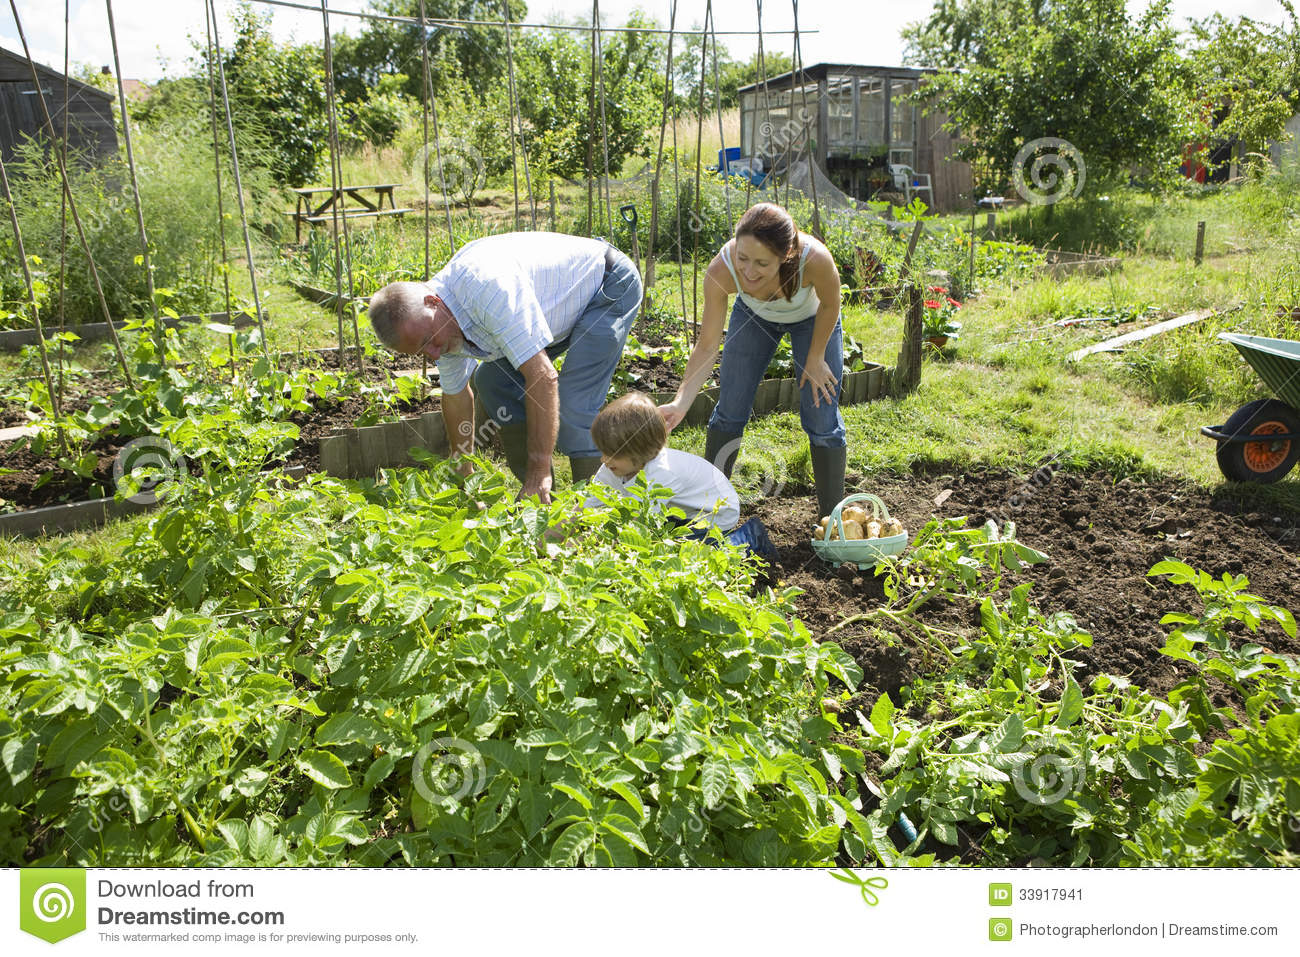 Family Gardening Together In Community Garden Stock Image - Image ...